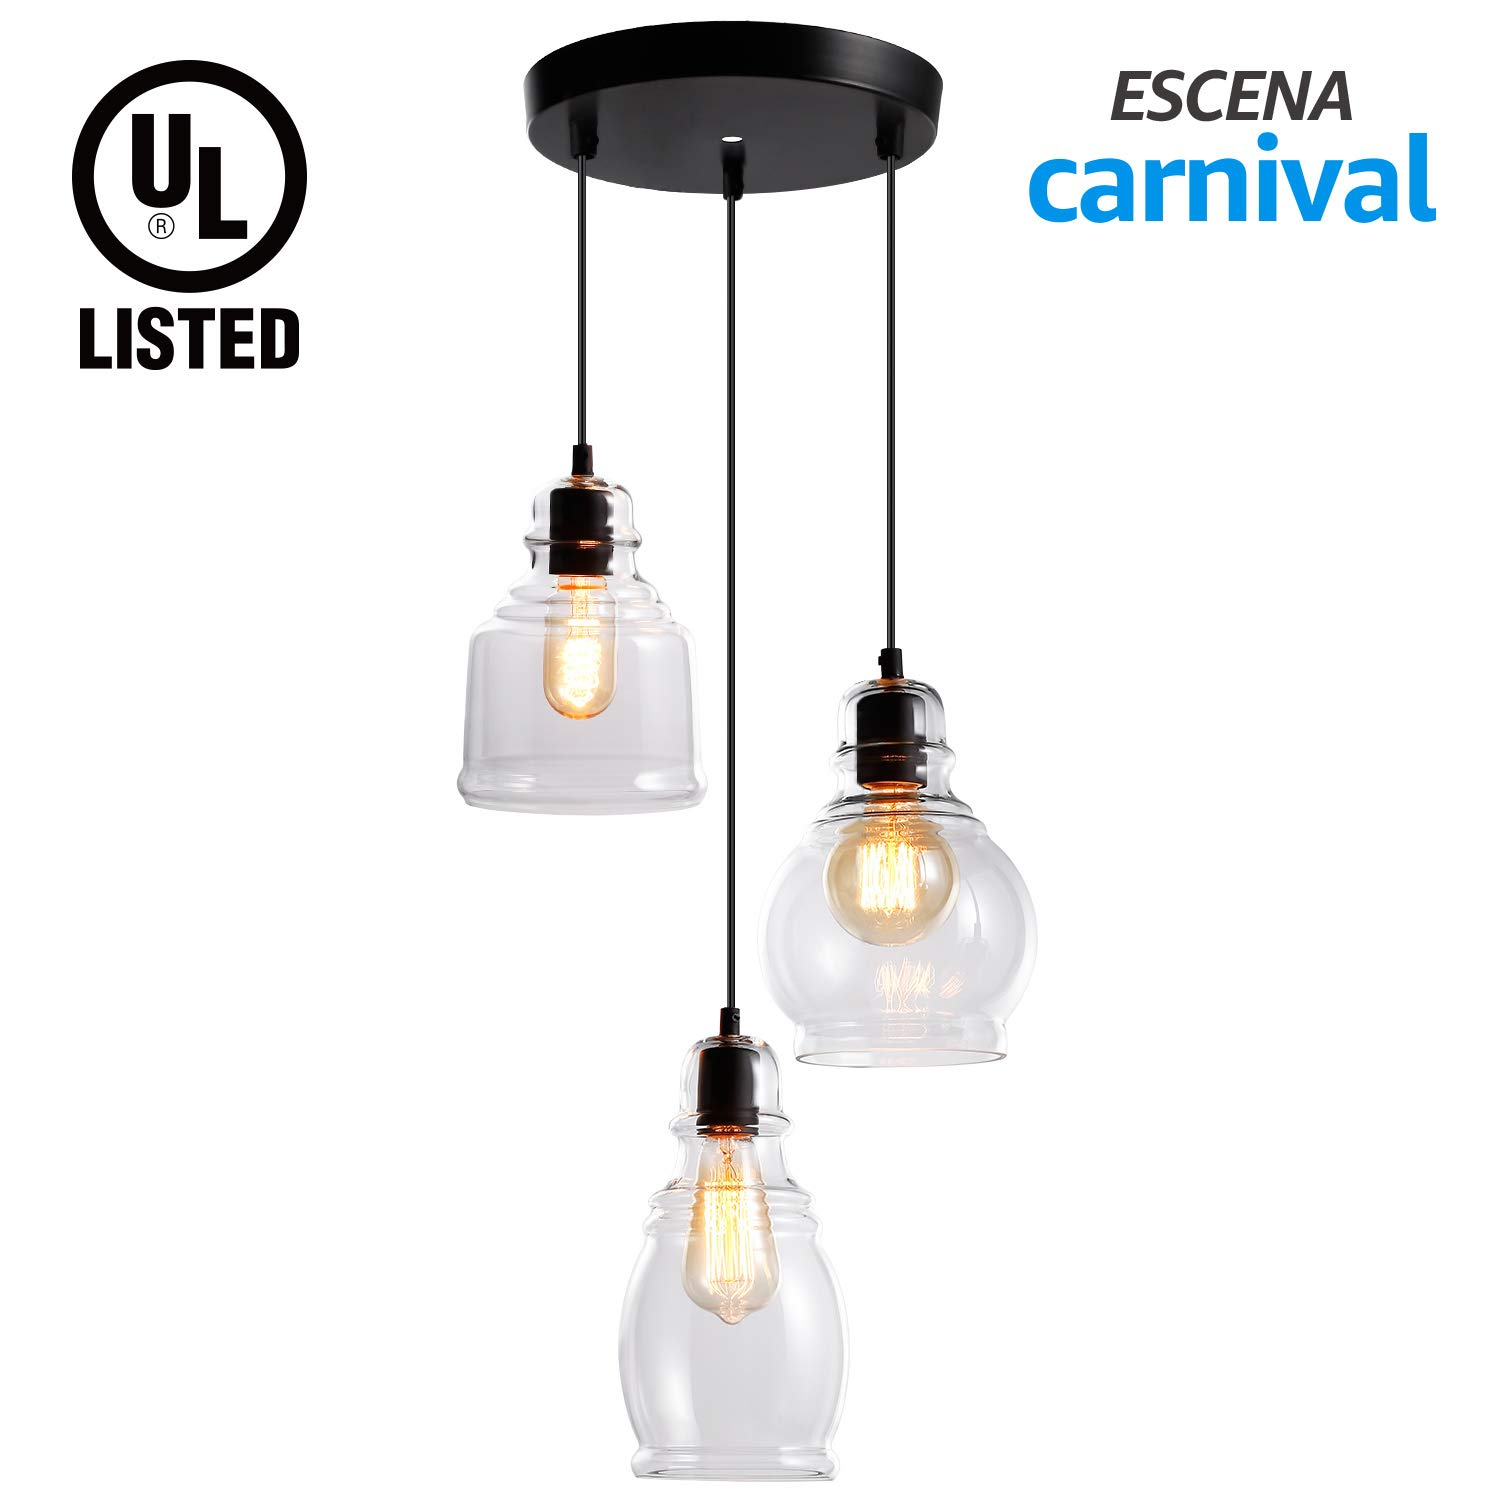 ESCENA Glass Pendant Light, UL-Listed Classic Hanging Lighting Fixture, Elegant Antique Clear Jar Chandelier, for Kitchen Sink, Dinning Room, Bar, Cafe by ESCENA